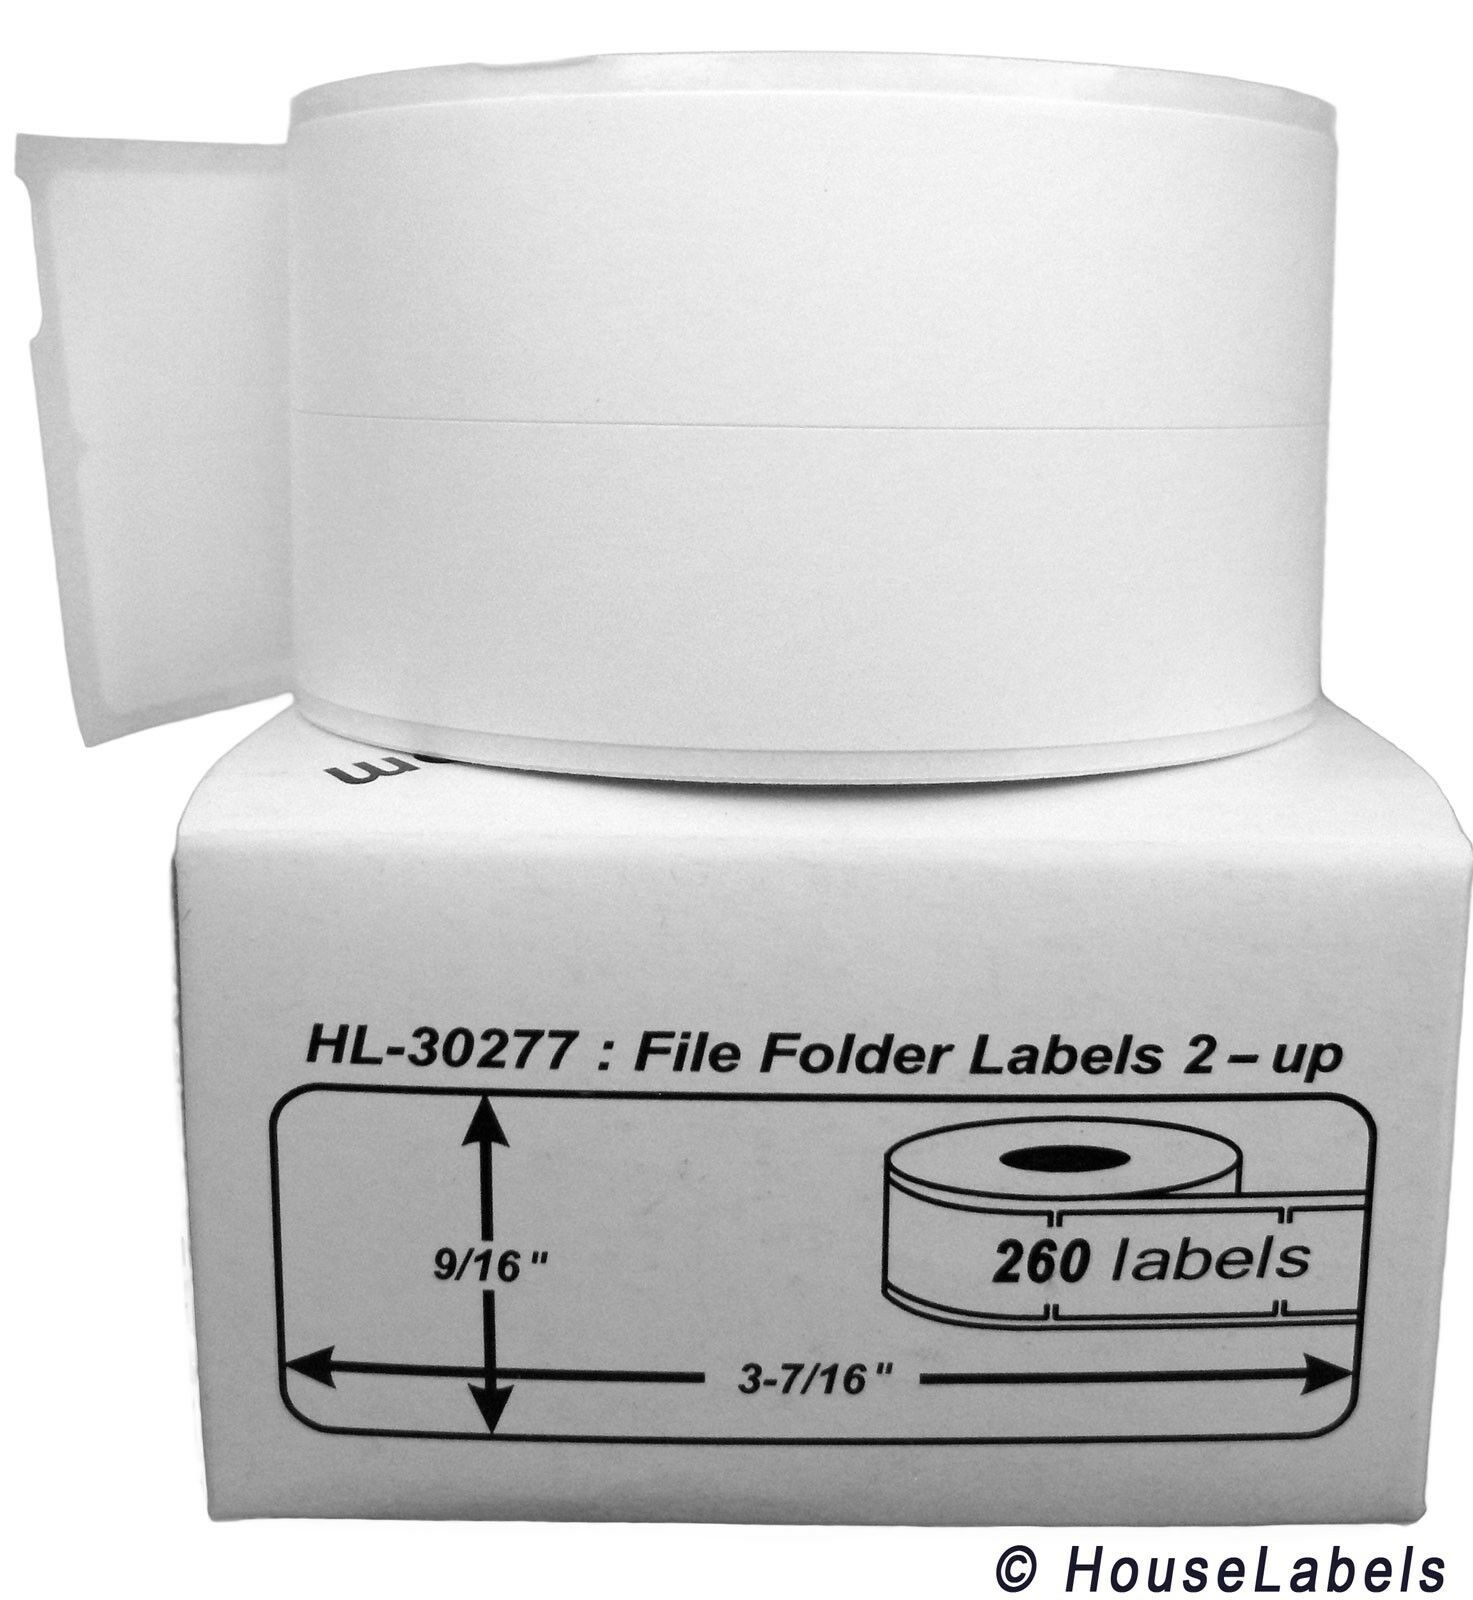 100 Rolls of 260 File Folder Labels (2-up) for DYMO® LabelWriters® 30277